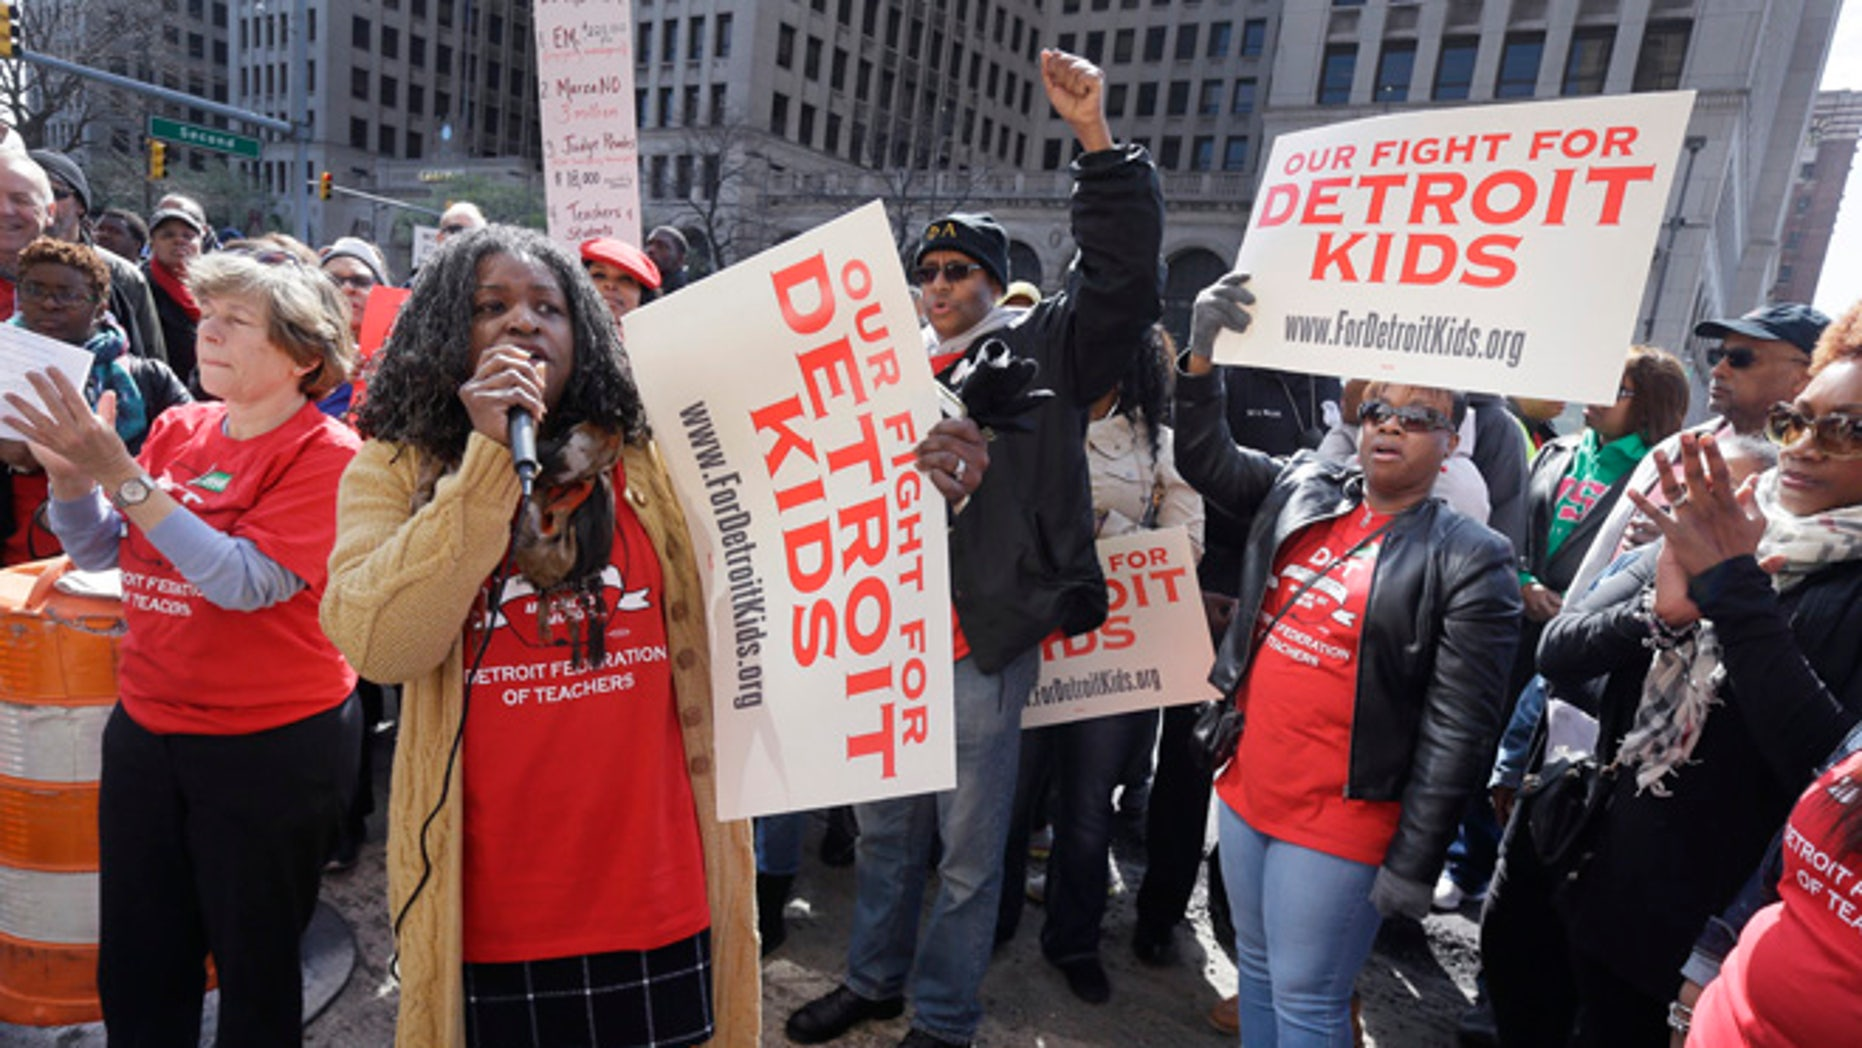 Detroit Federation of Teachers President Ivy Bailey outside the school district's headquarters on Tuesday.